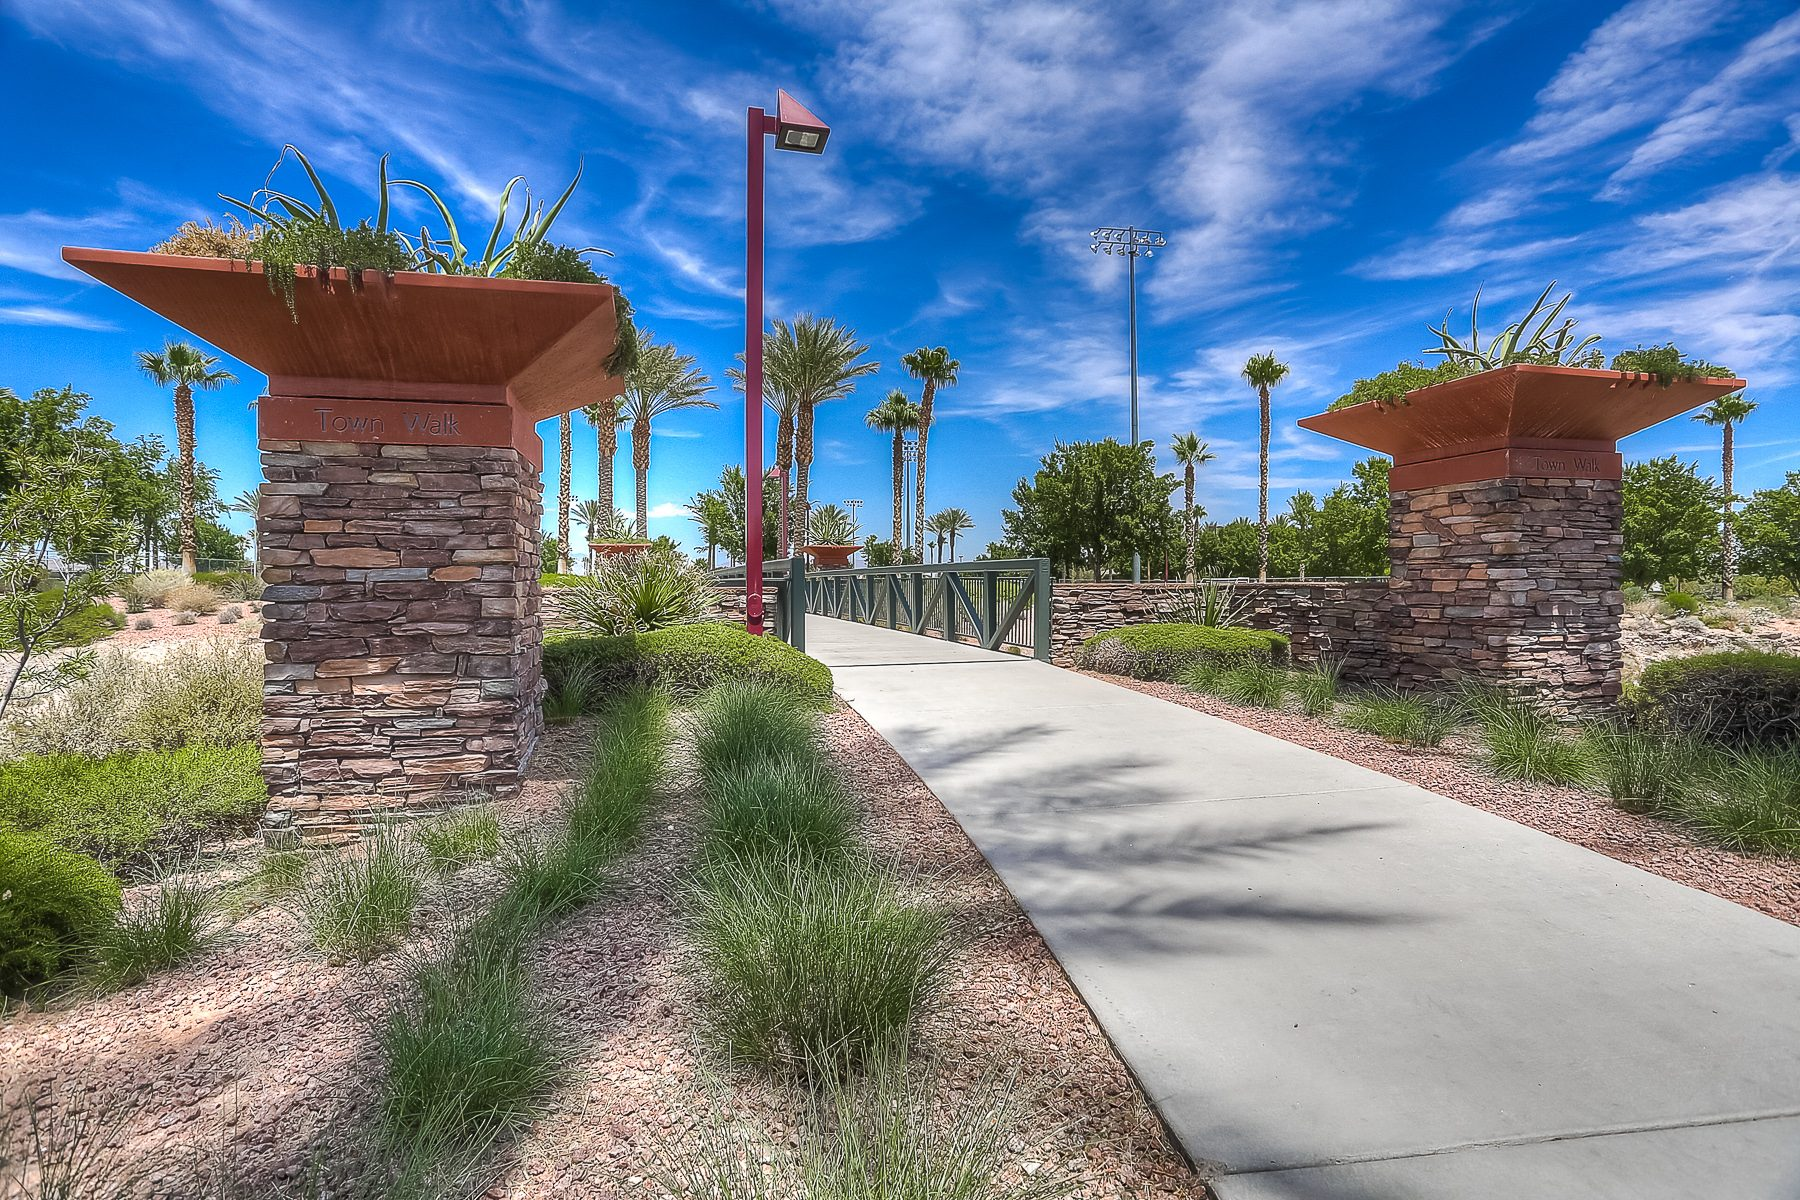 07 summerlin community parks